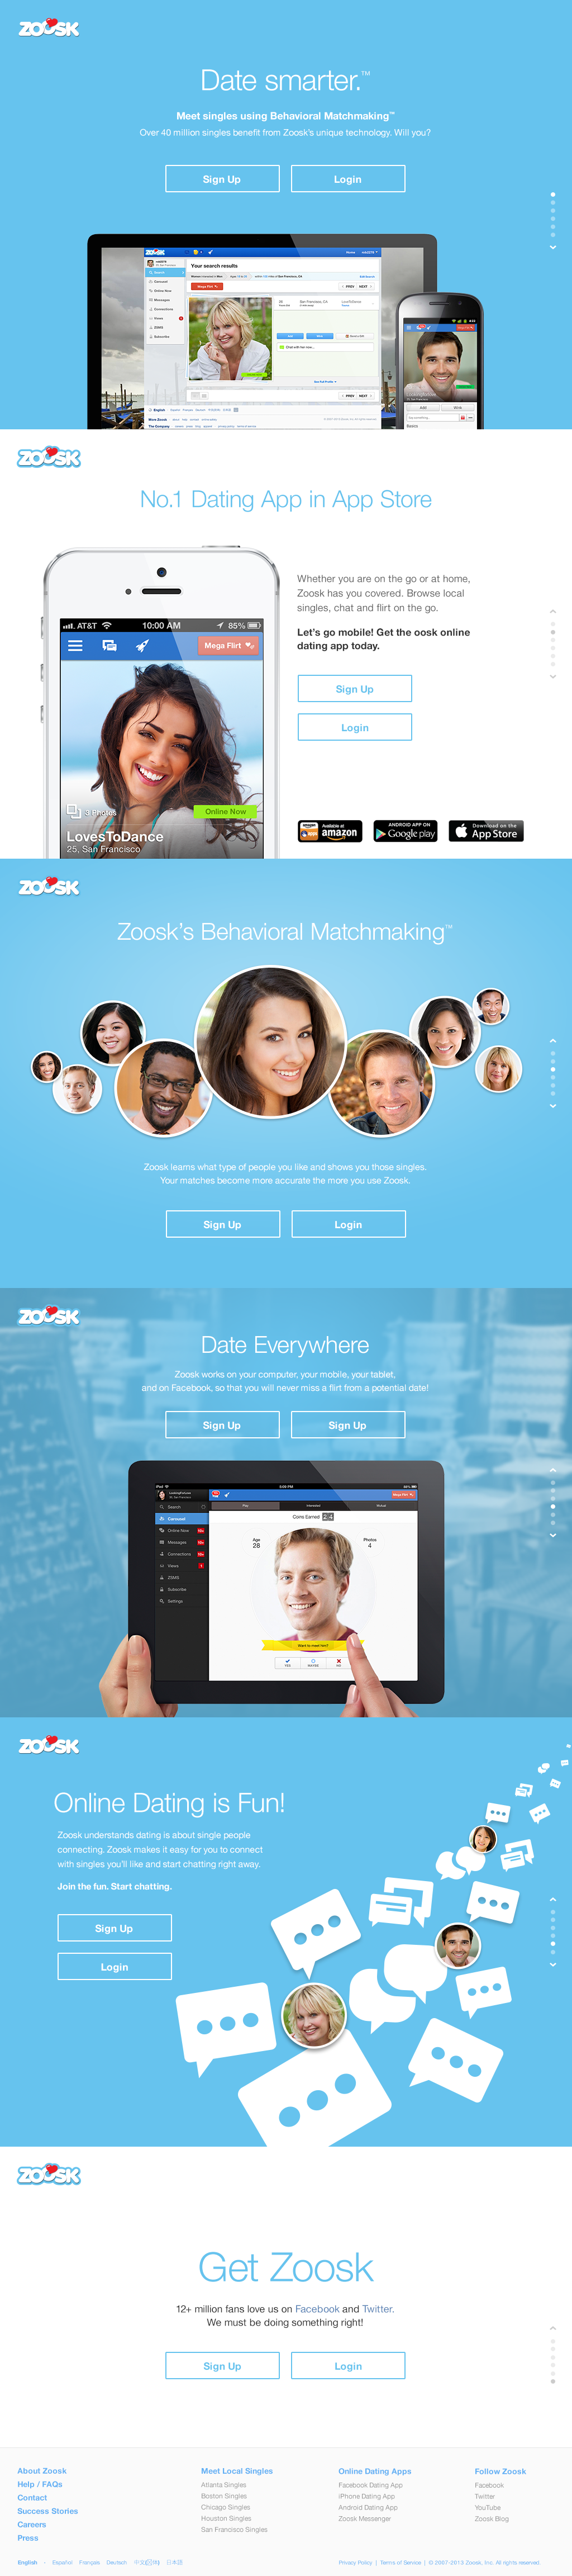 parallax_homepage.png